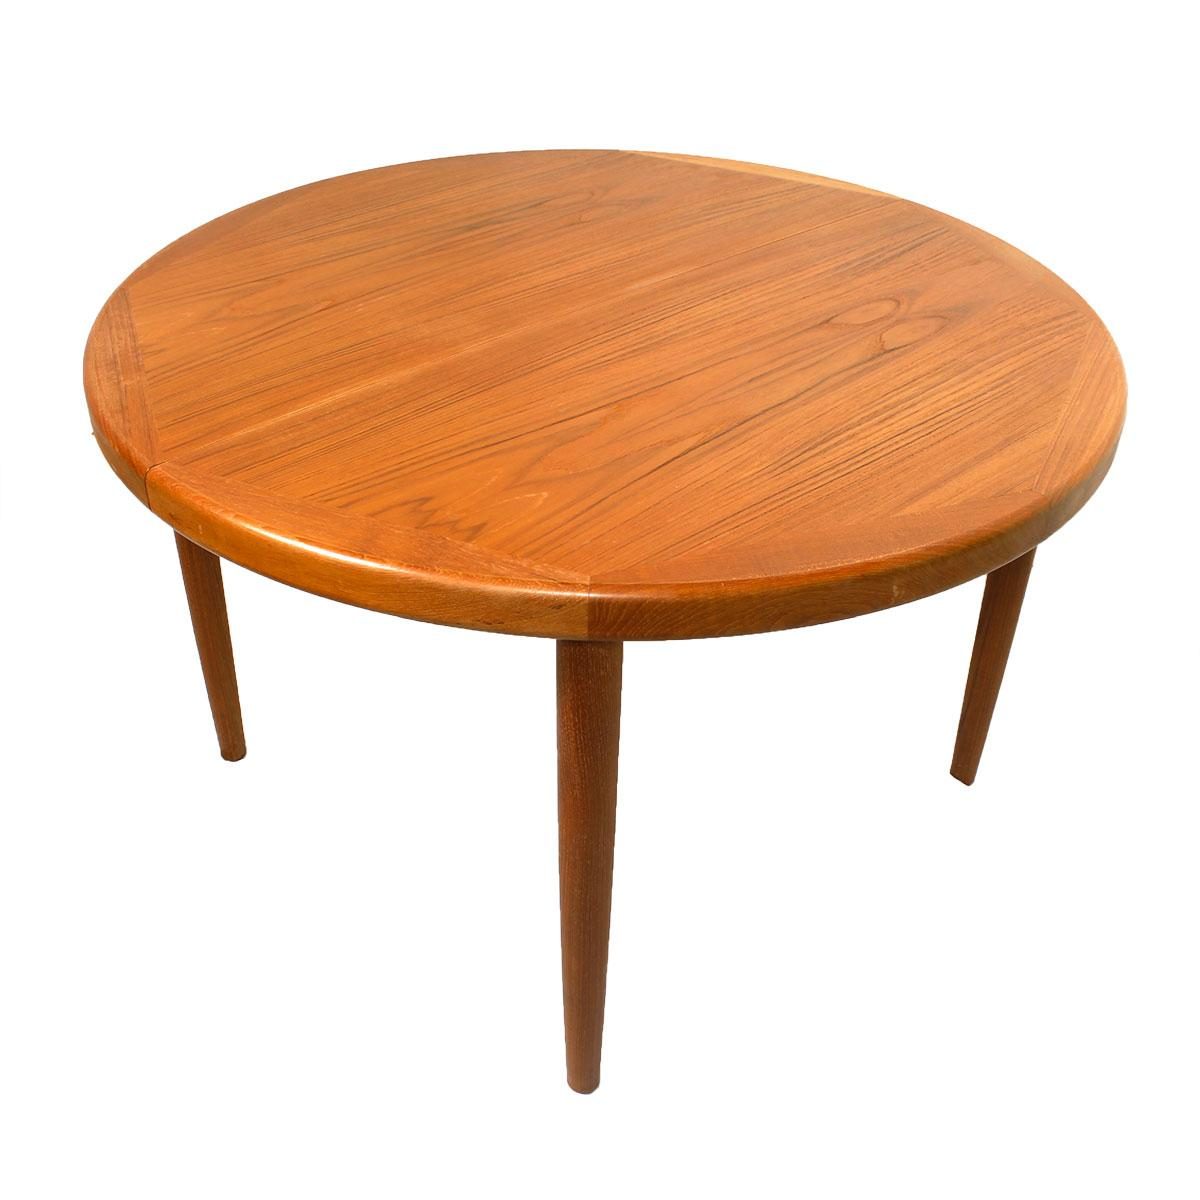 Dining Room Pads For Table: Danish Teak Round/Oval Dining Table & Pads